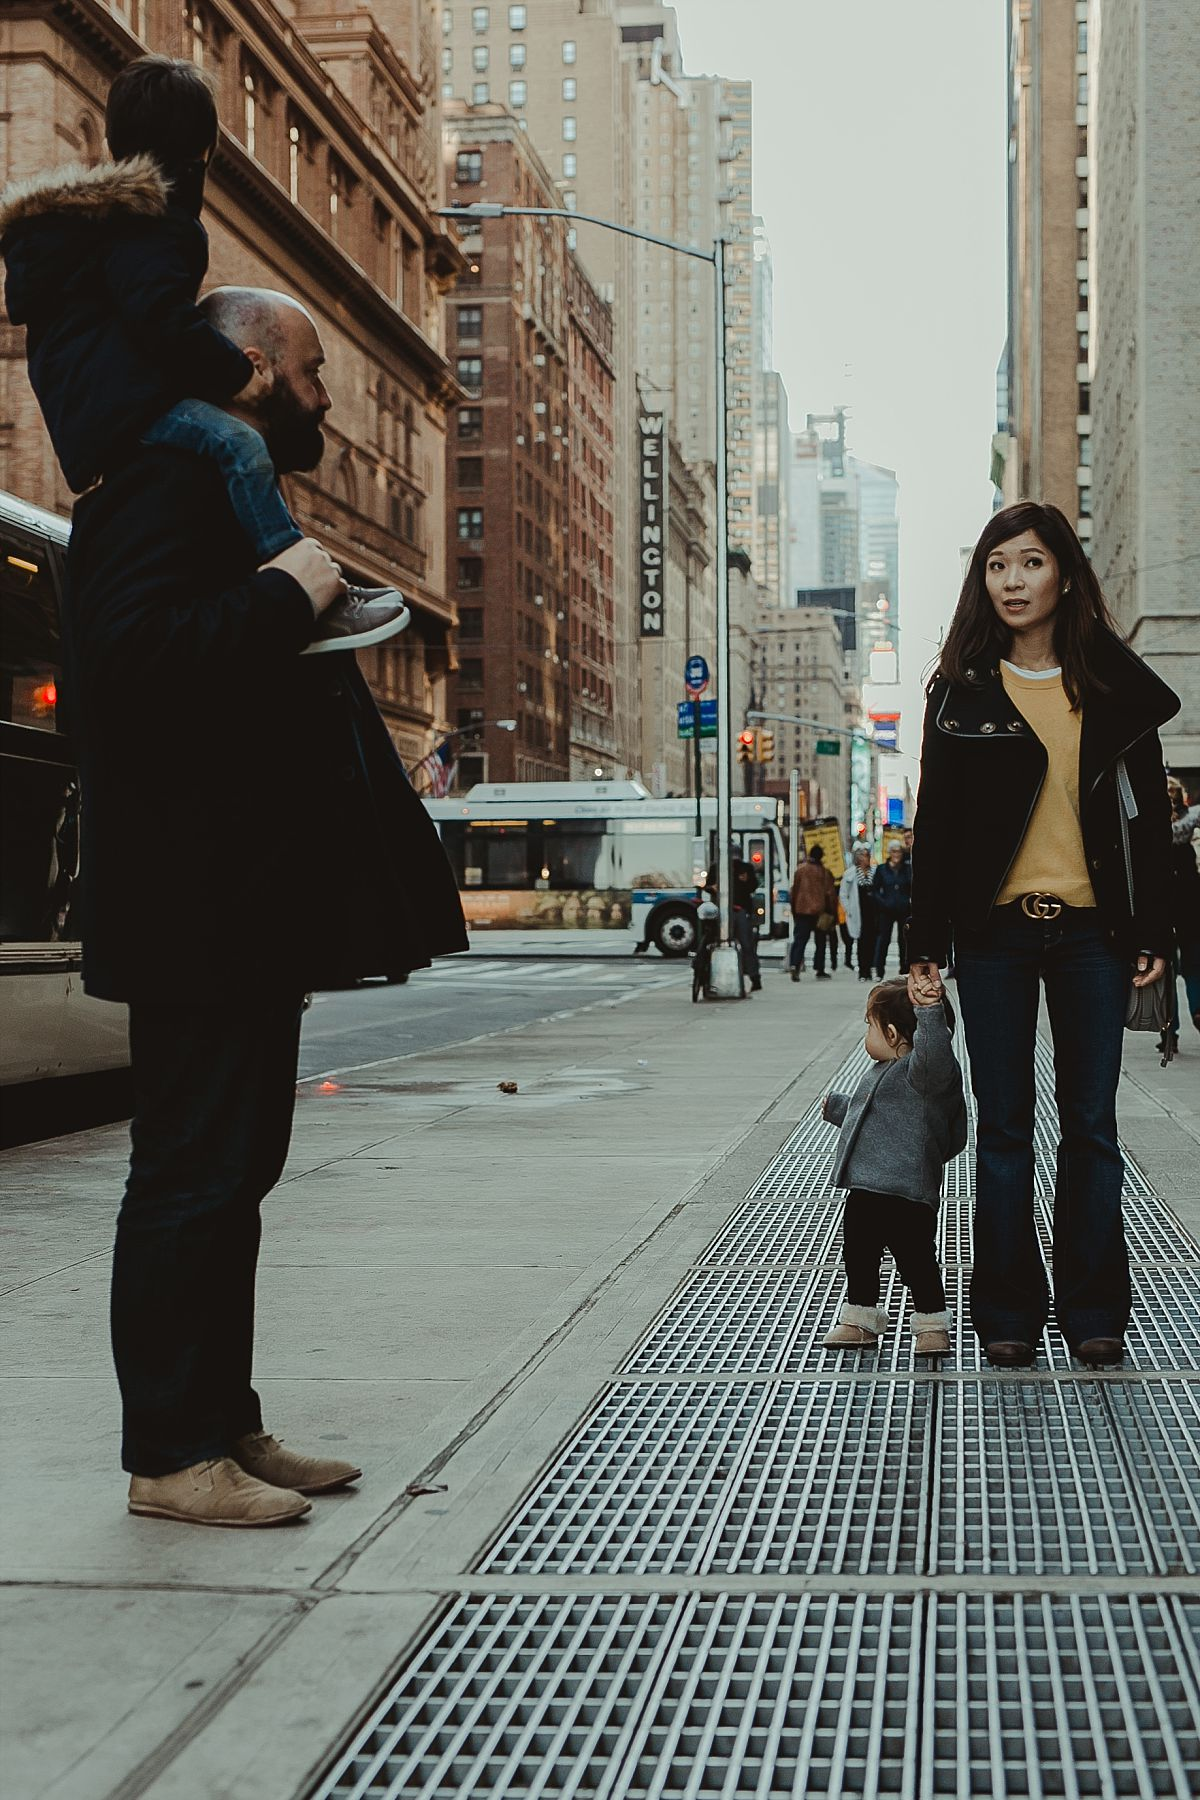 candid image of family of four walking the streets of midtown manhattan on a cold winter's day. image by nyc family photographer krystil mcdowall